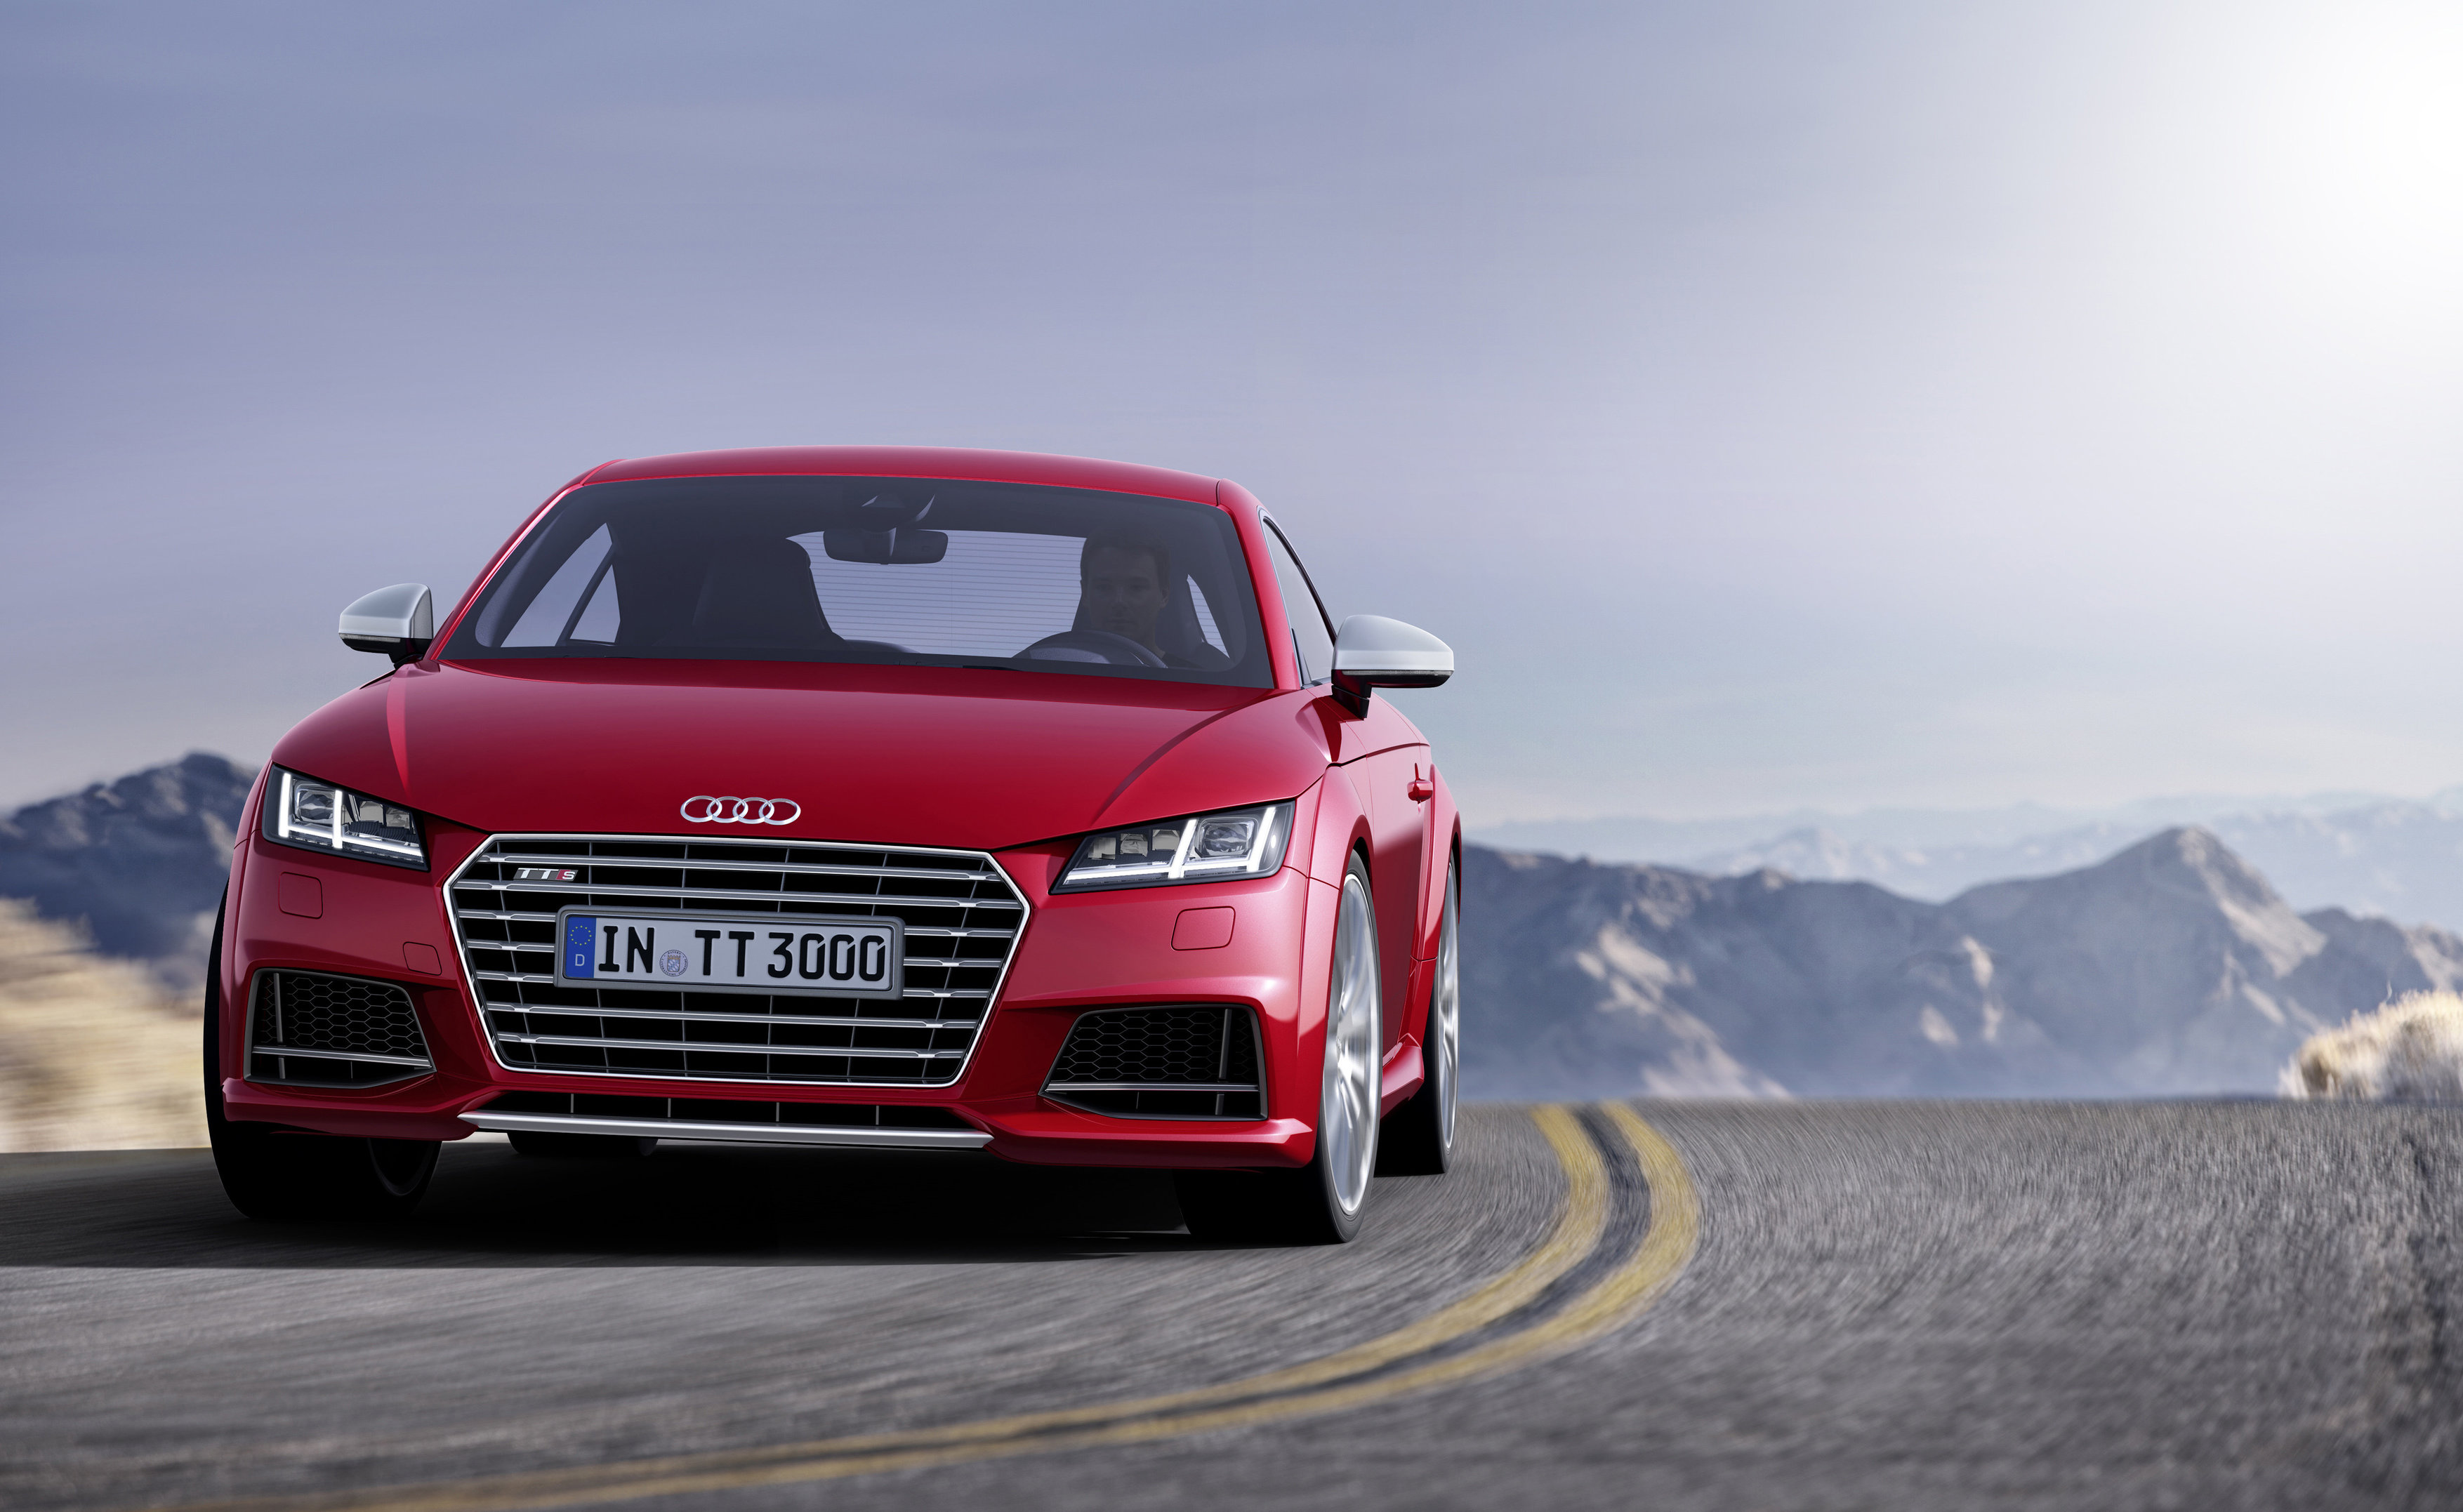 2016 Audi TT, photo courtesy of Audi